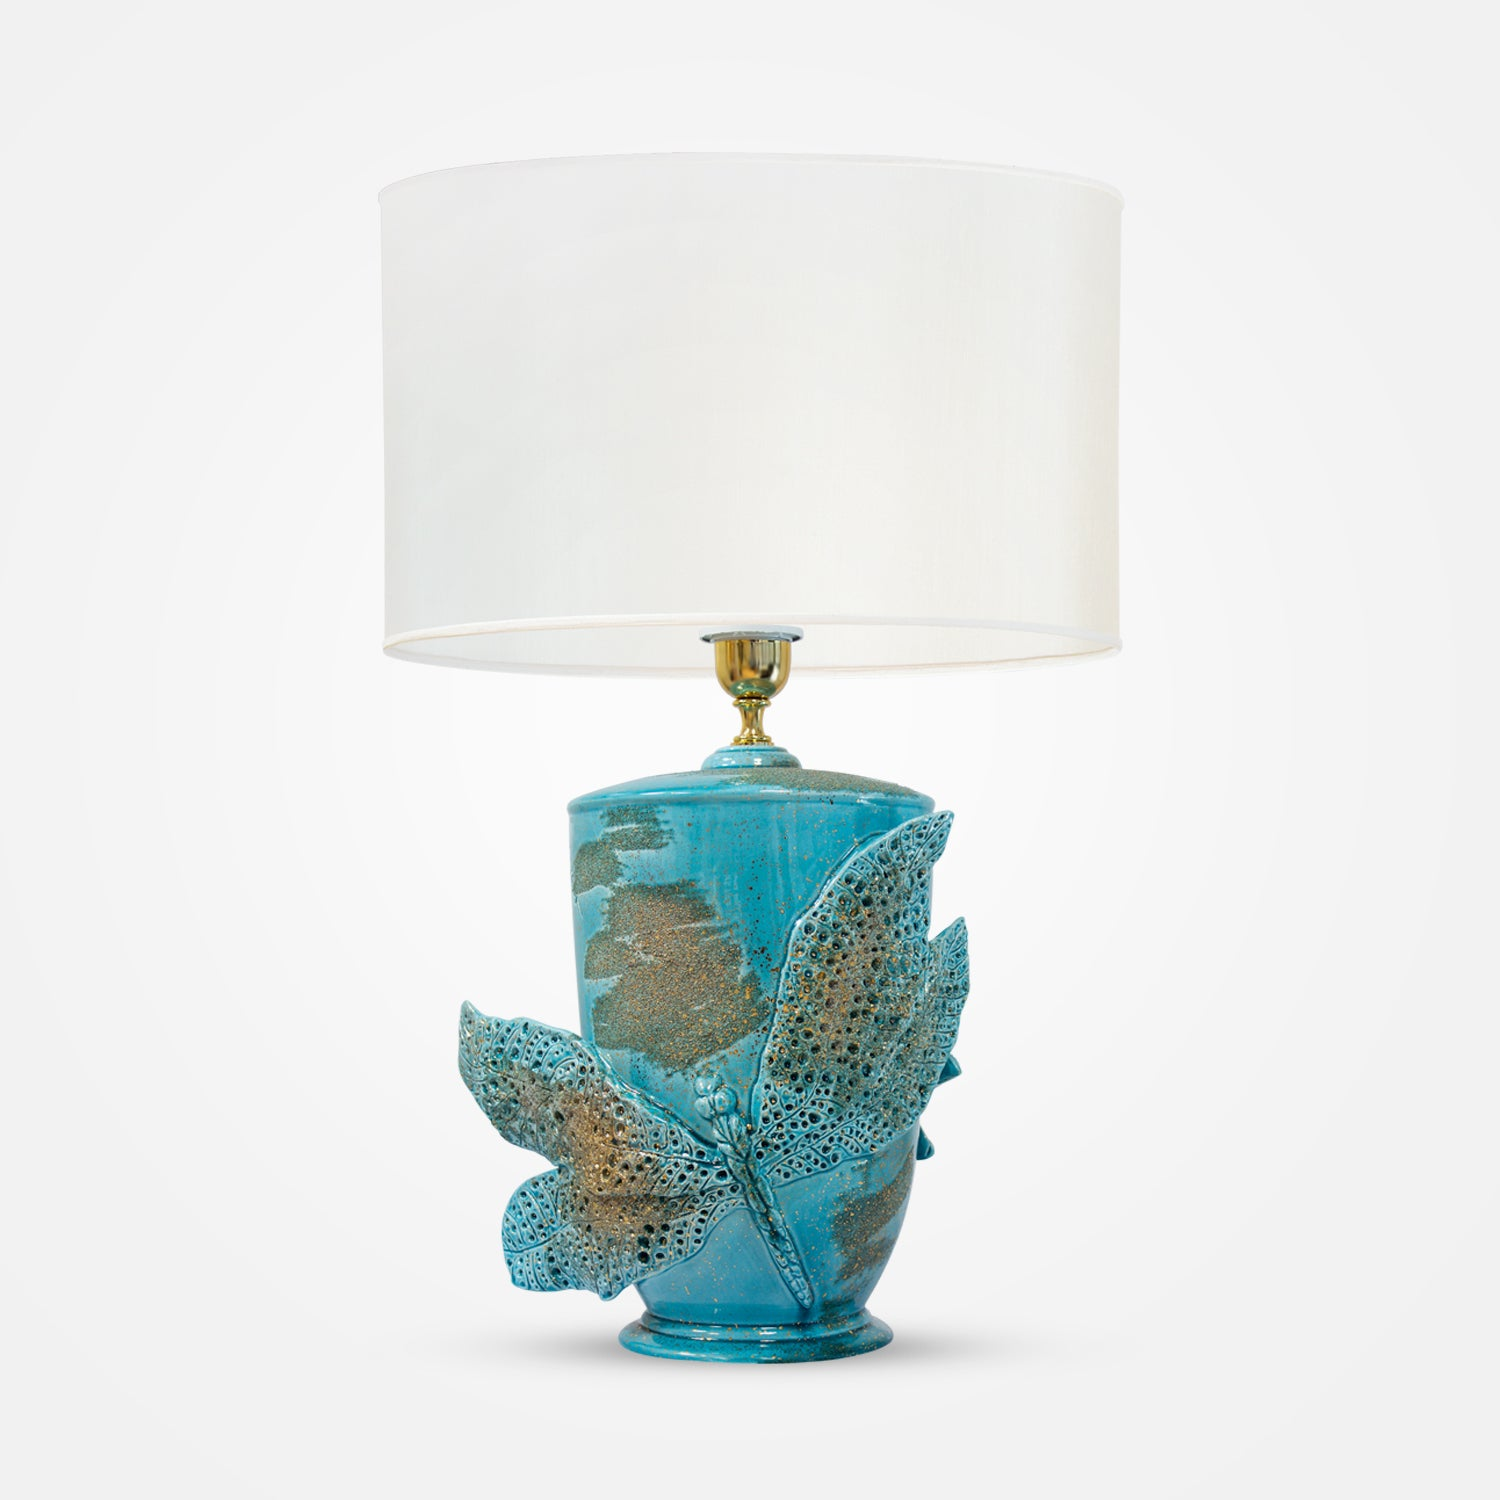 Dragonfly Turquoise Table Lamp by Ceramiche Dal Pra